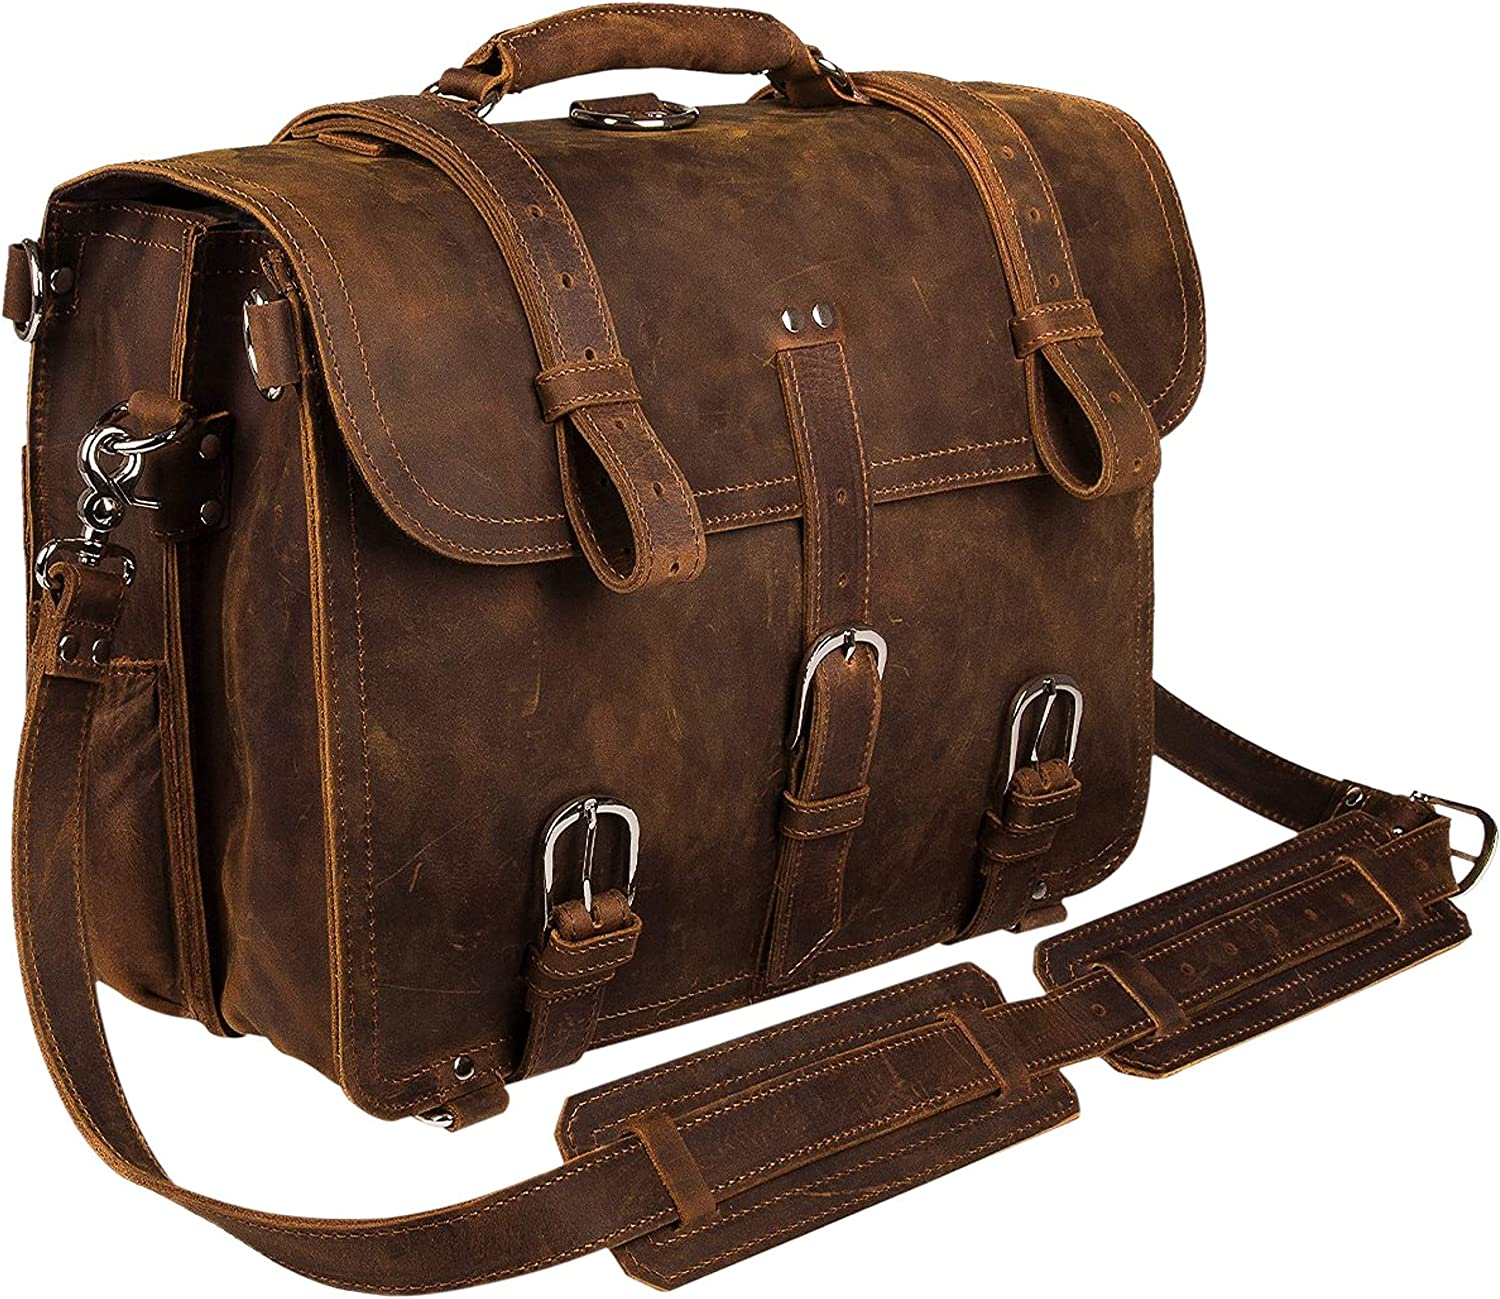 Personalized Handmade Men/'s Vintage Full Grain Leather Messenger Bag Business Case Computer Briefcase Groomsmen Gifts Valentine/'s Day Gift